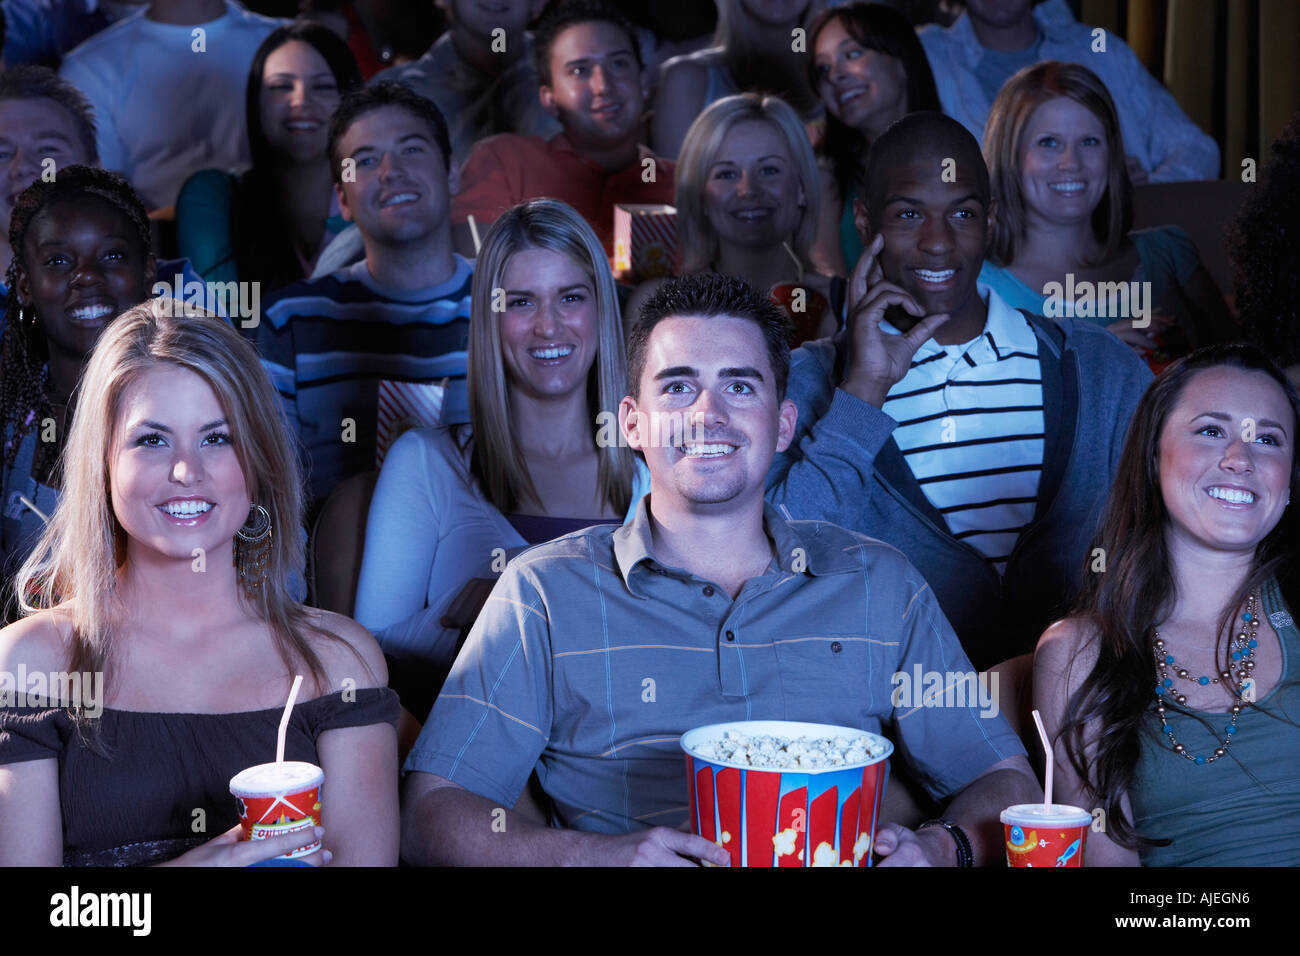 People holding soda and popcorn, Watching Movie in Theatre - Stock Image